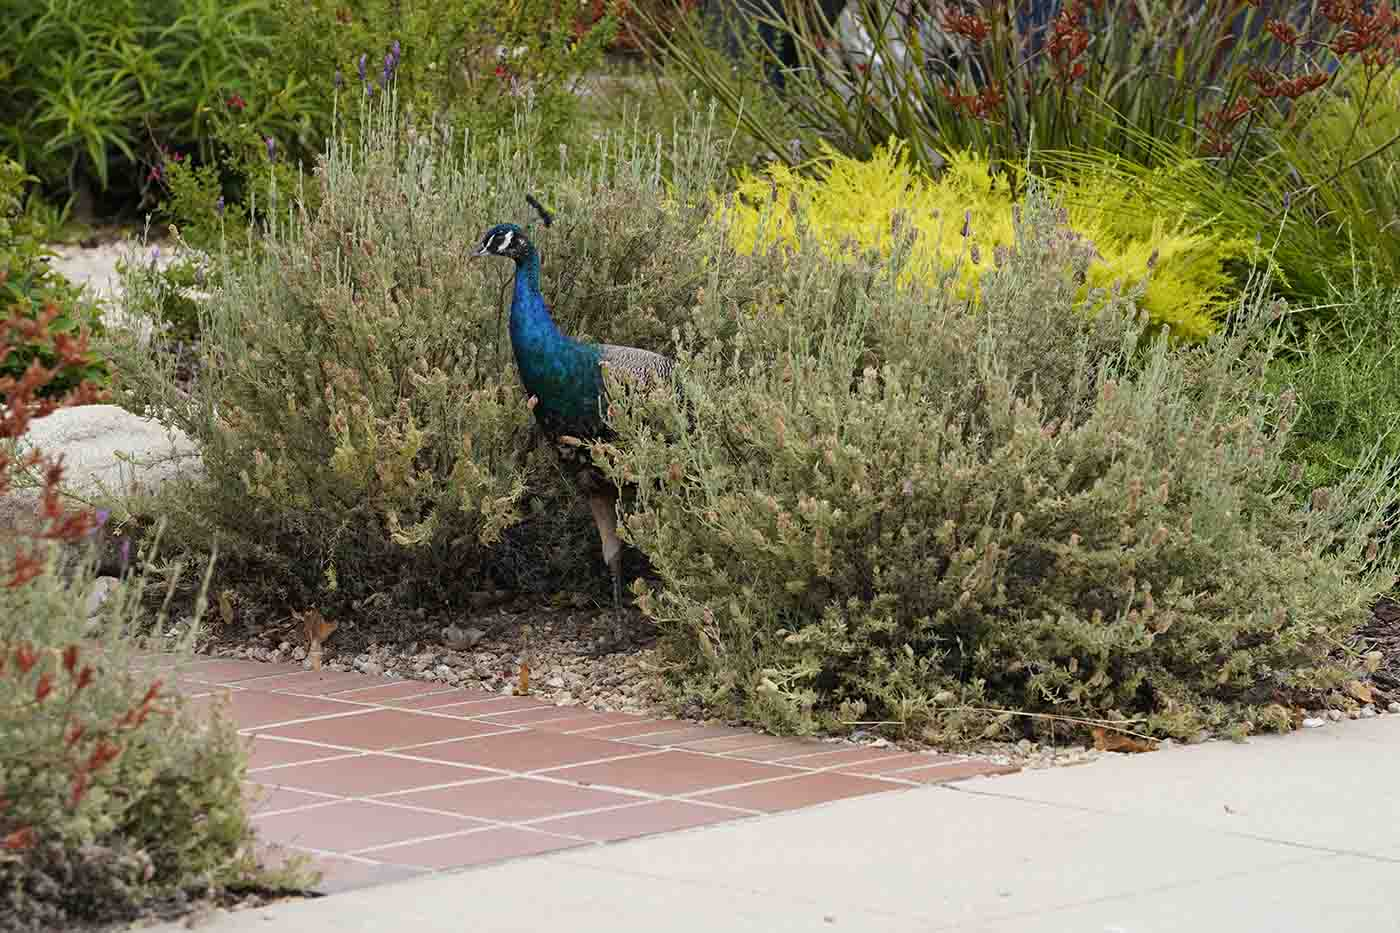 peacock hiding in bushes